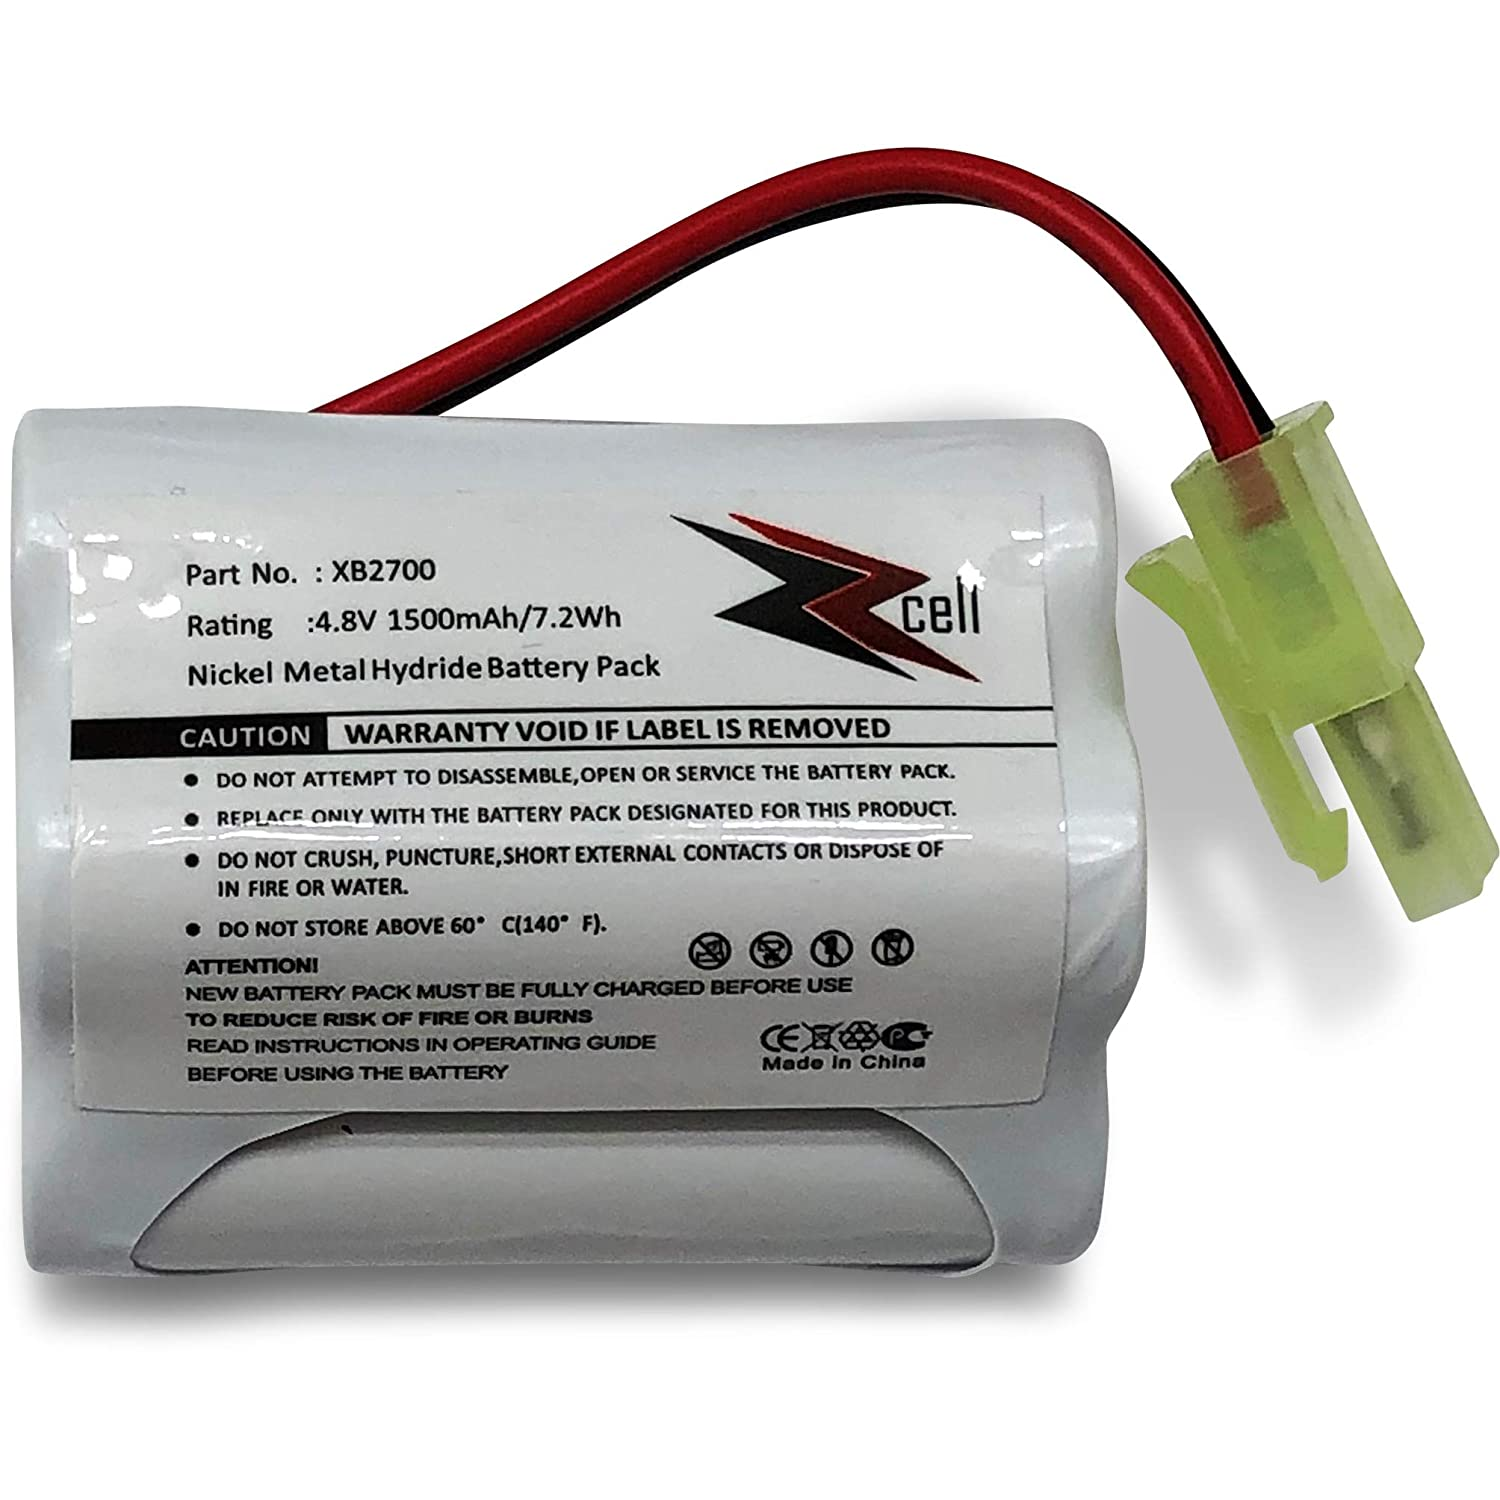 ZZcell Battery for Euro Pro Shark Vacuum Carpet and Carpet Sweeper XB2700, V2930, V2700Z, VAC-XB2700, V2700, 1500mAh (1)